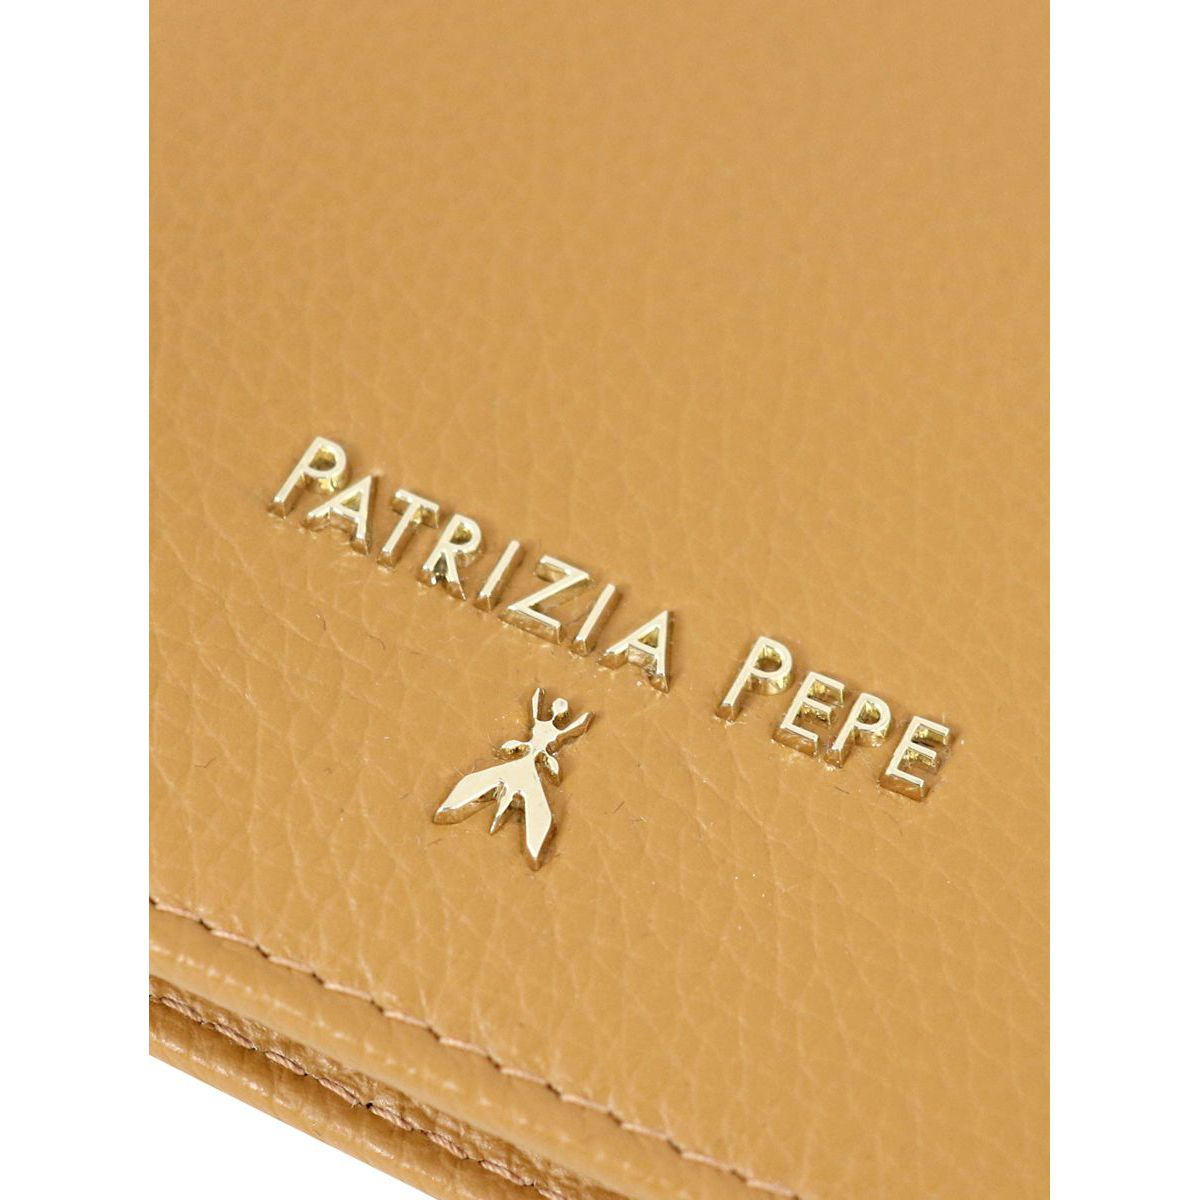 Vertical wallet in hammered leather with logo Leather Patrizia Pepe